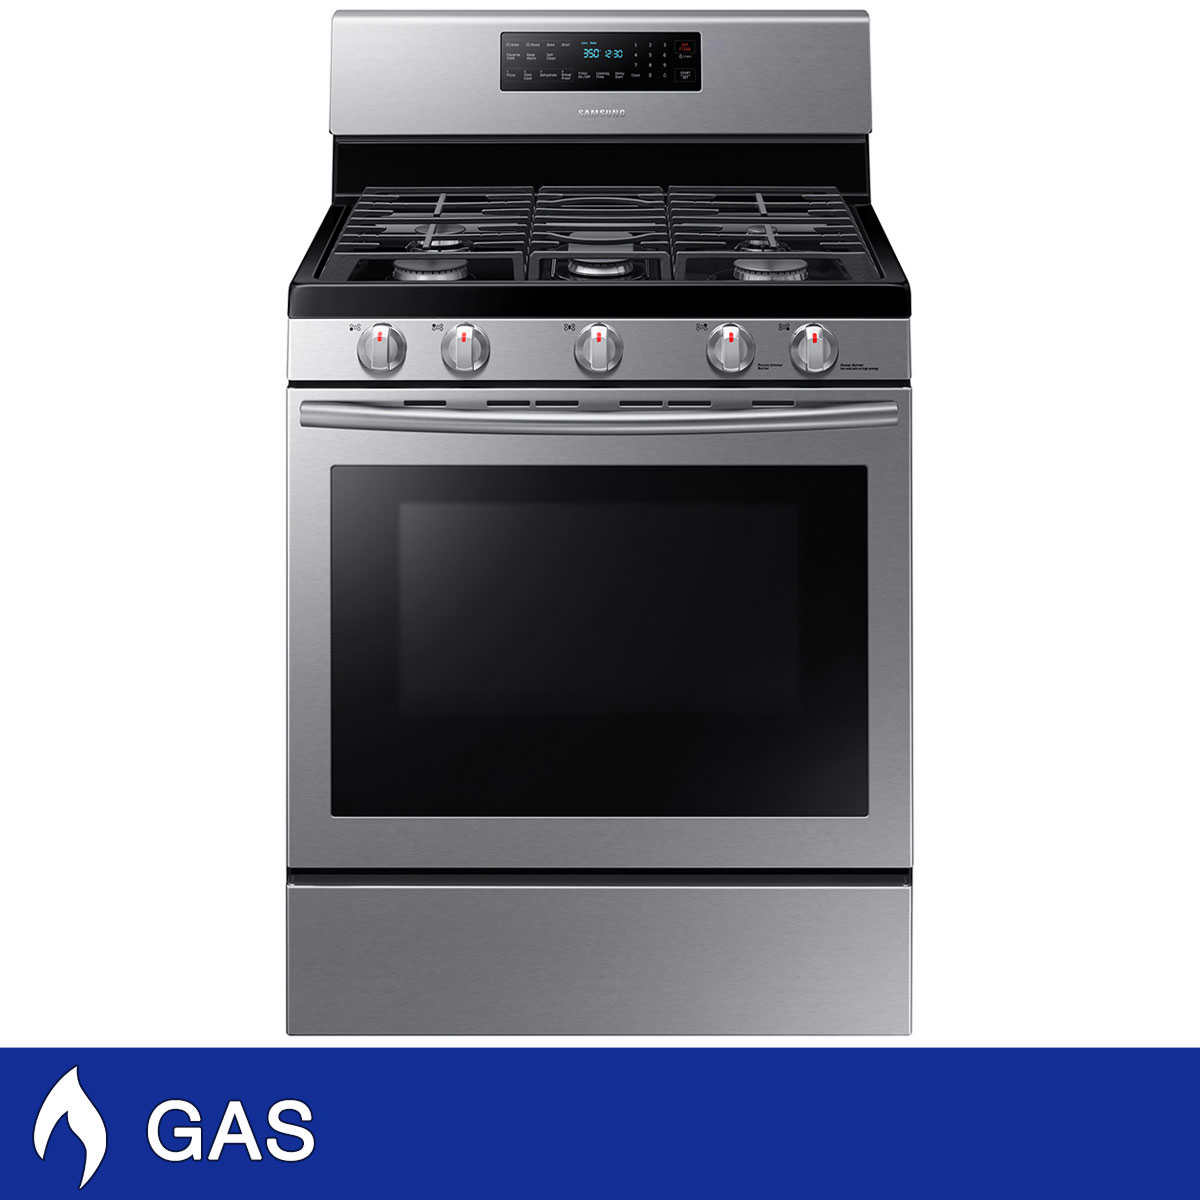 Whirlpool 5 burner gas range - Samsung 5 8cuft Gas Range With Convection Cooking In Stainless Steel